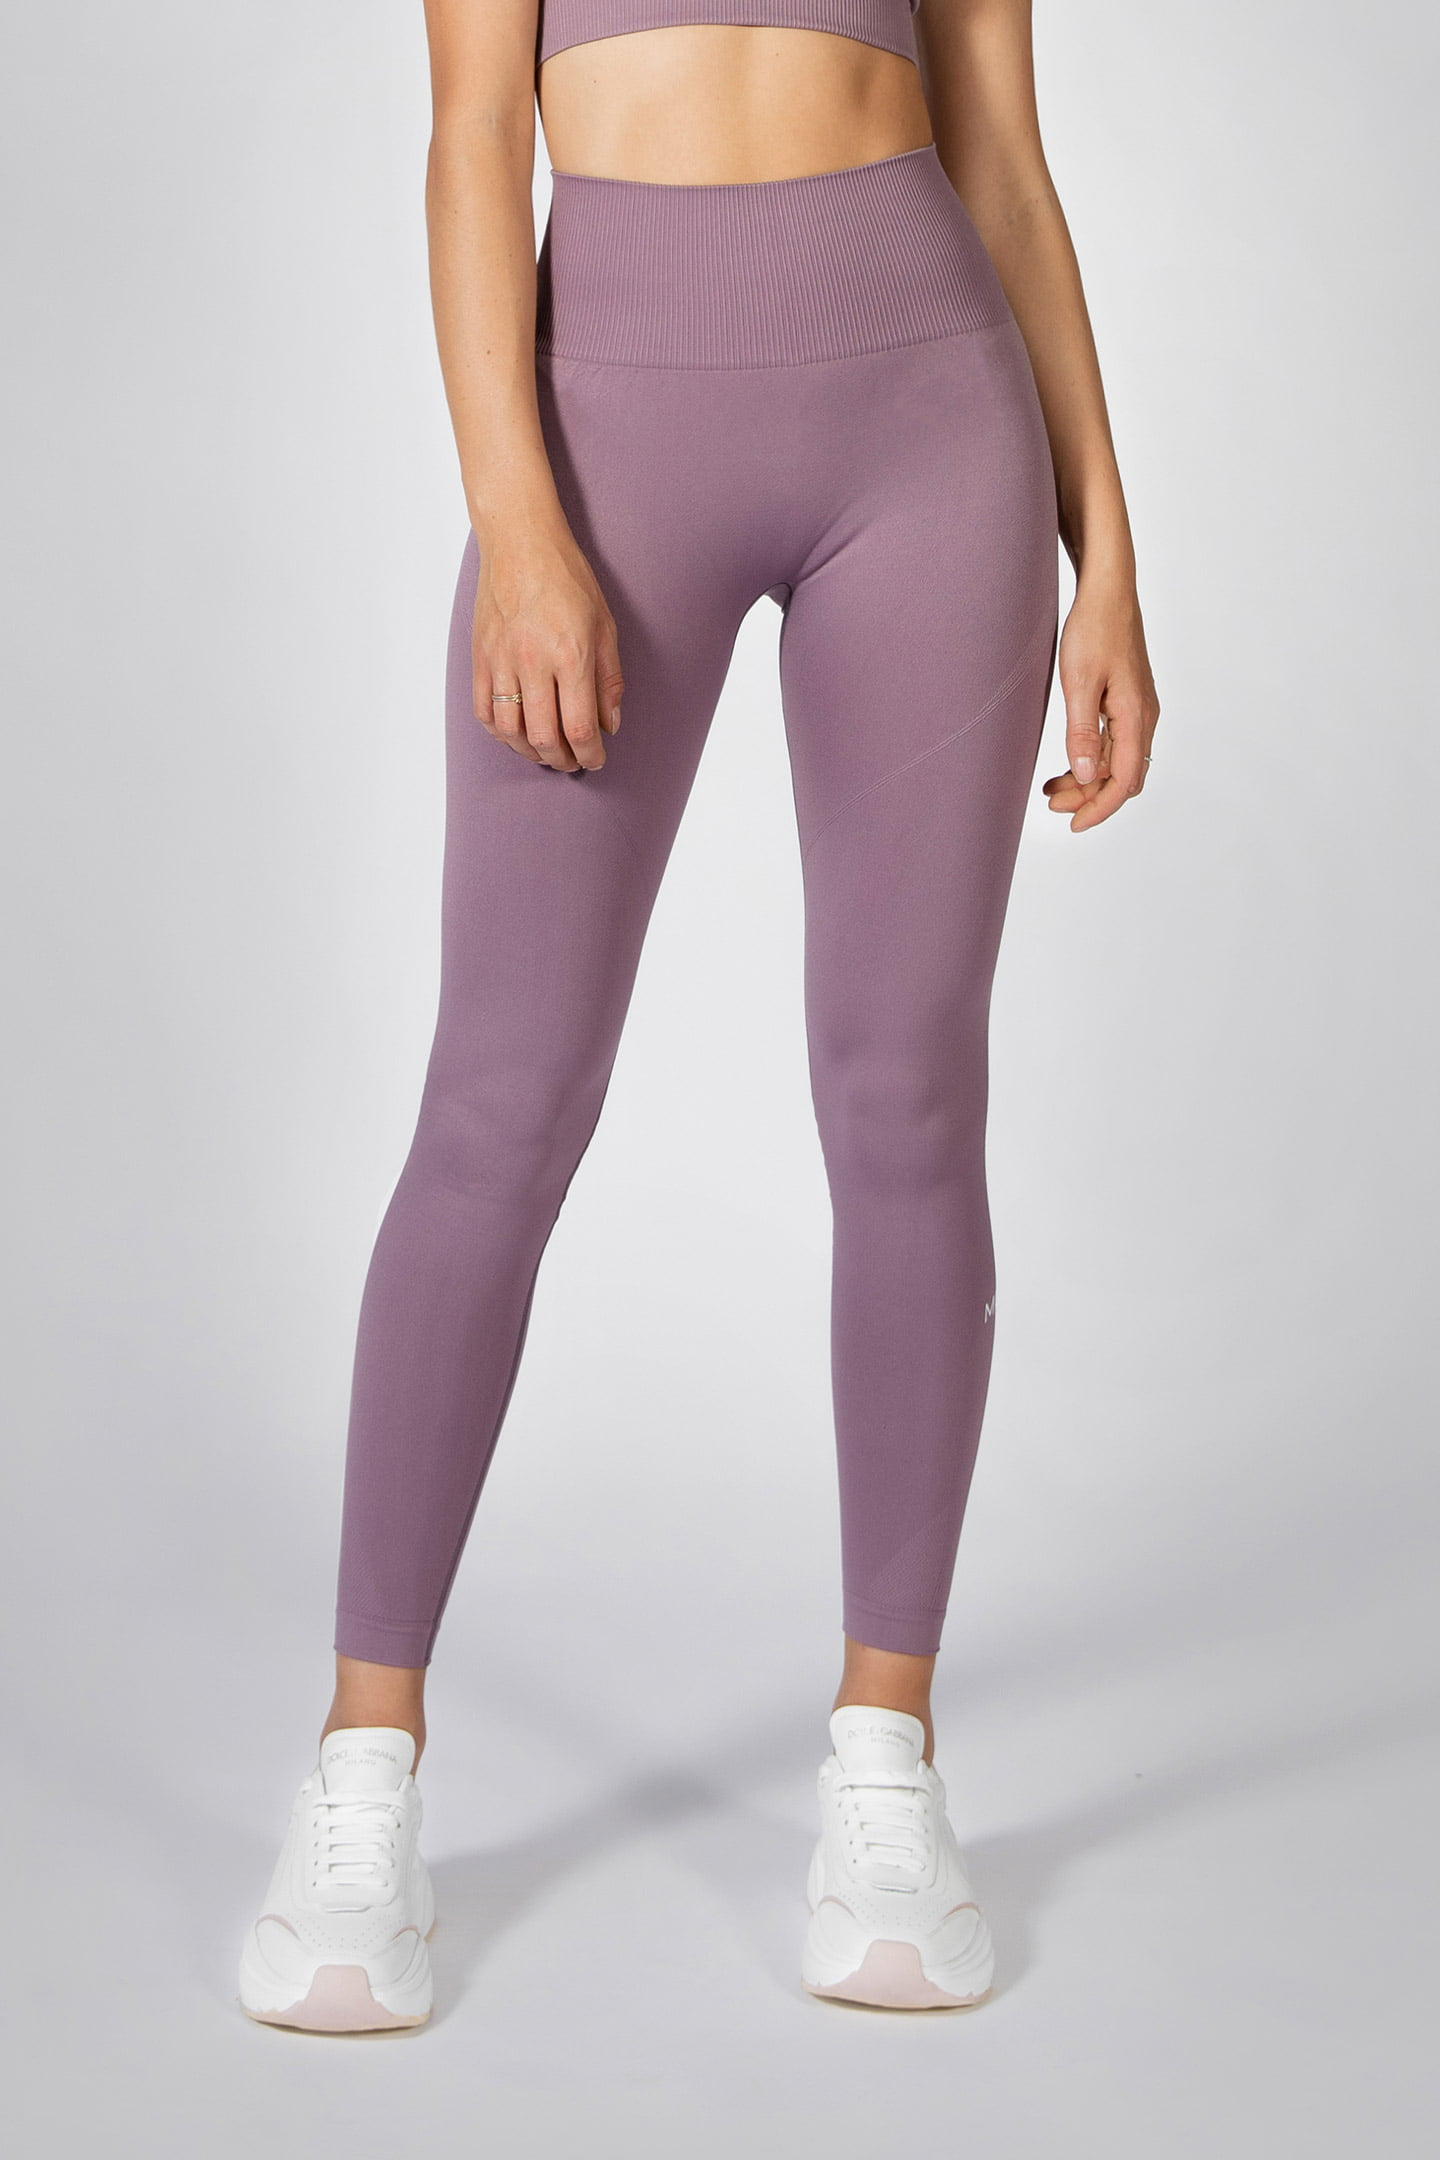 fit girl posing in seamless legging in mauve colour